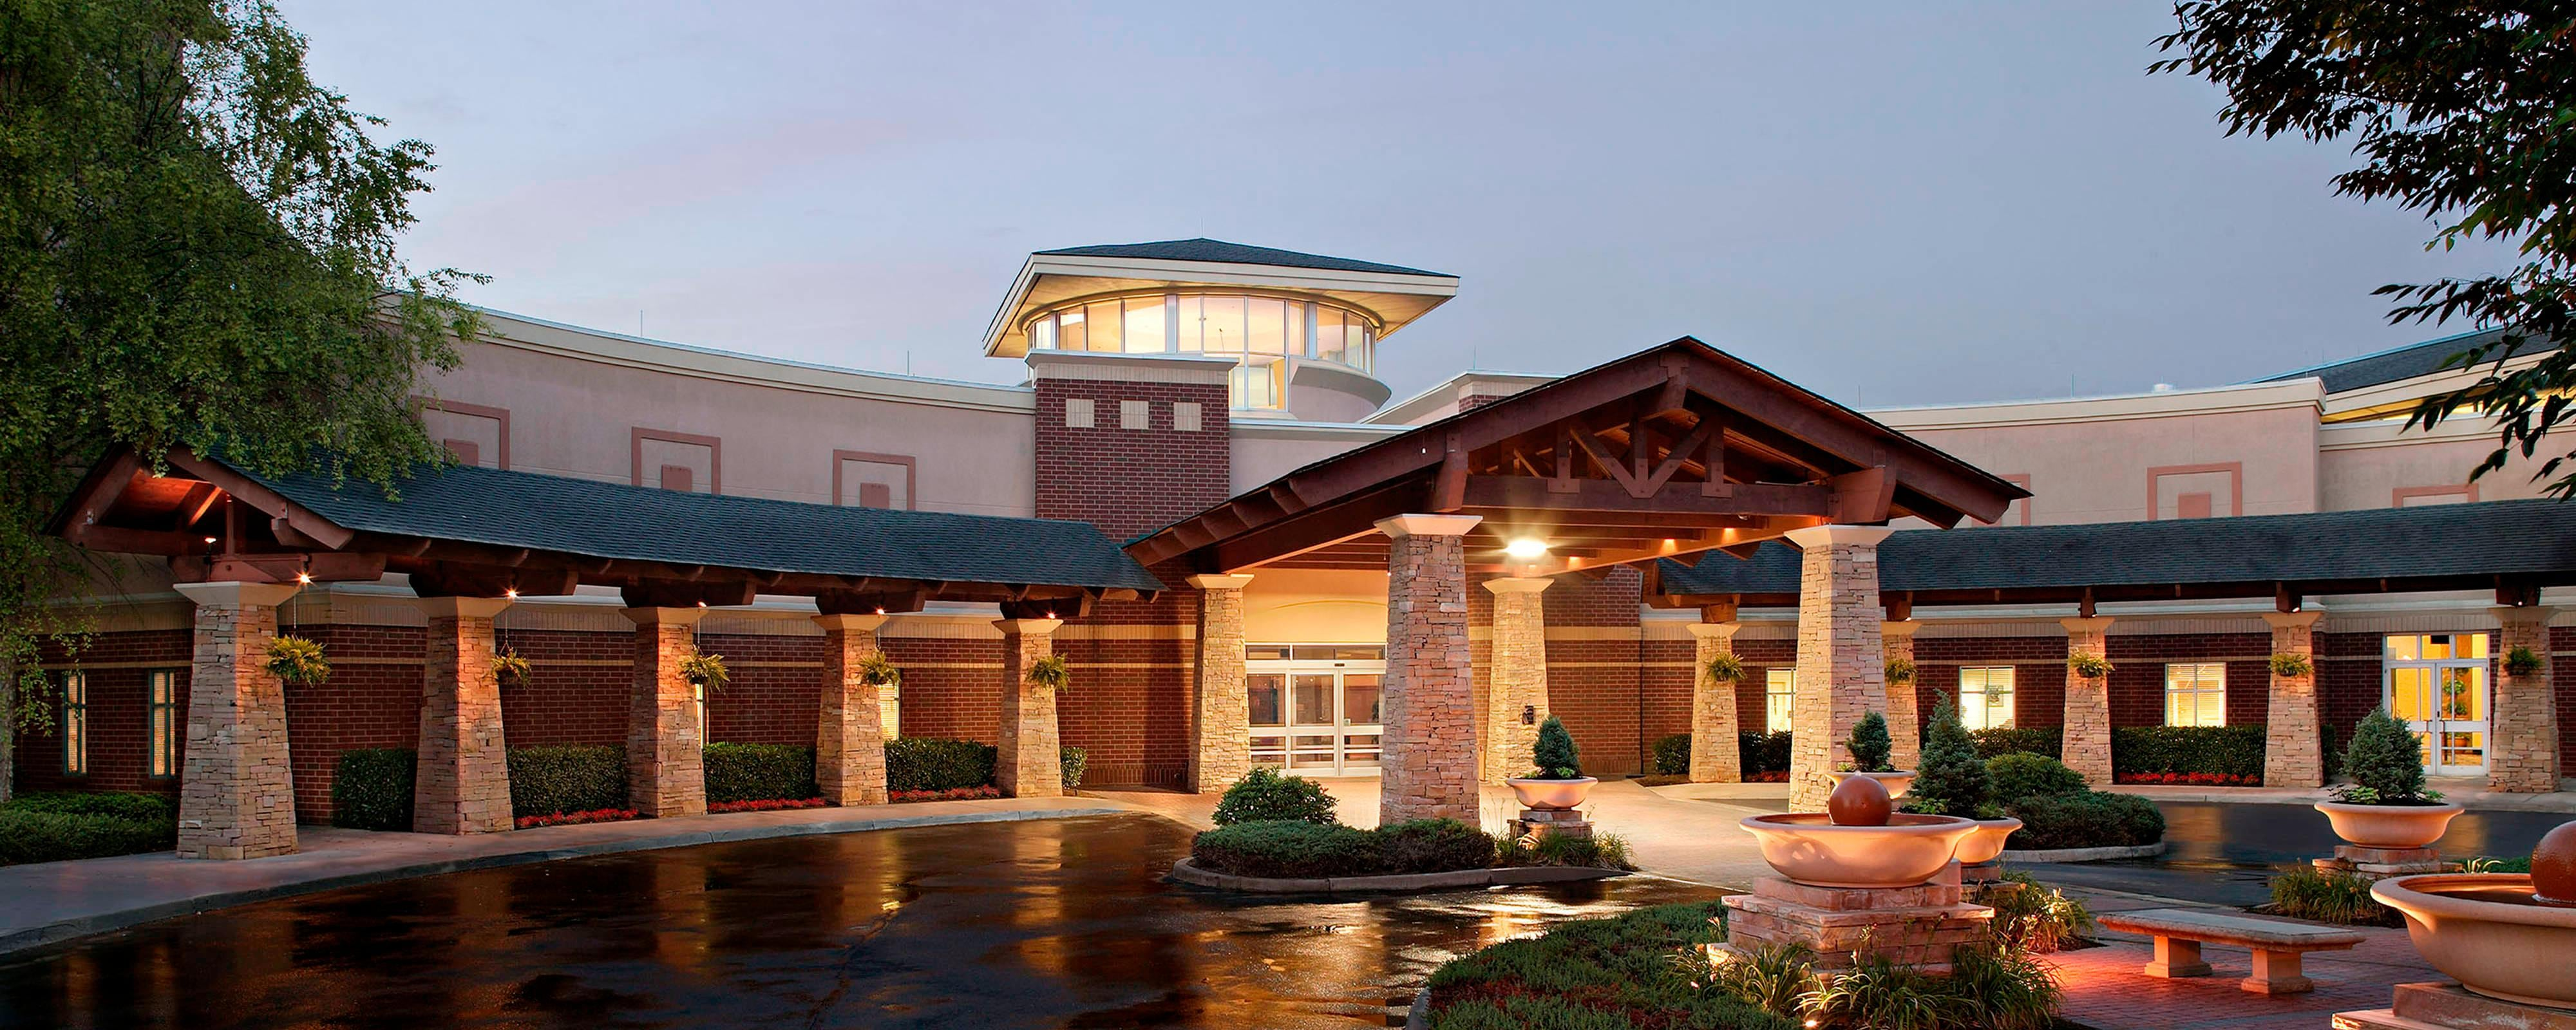 Kingsport Hotel | MeadowView Marriott Conference Resort & Convention ...